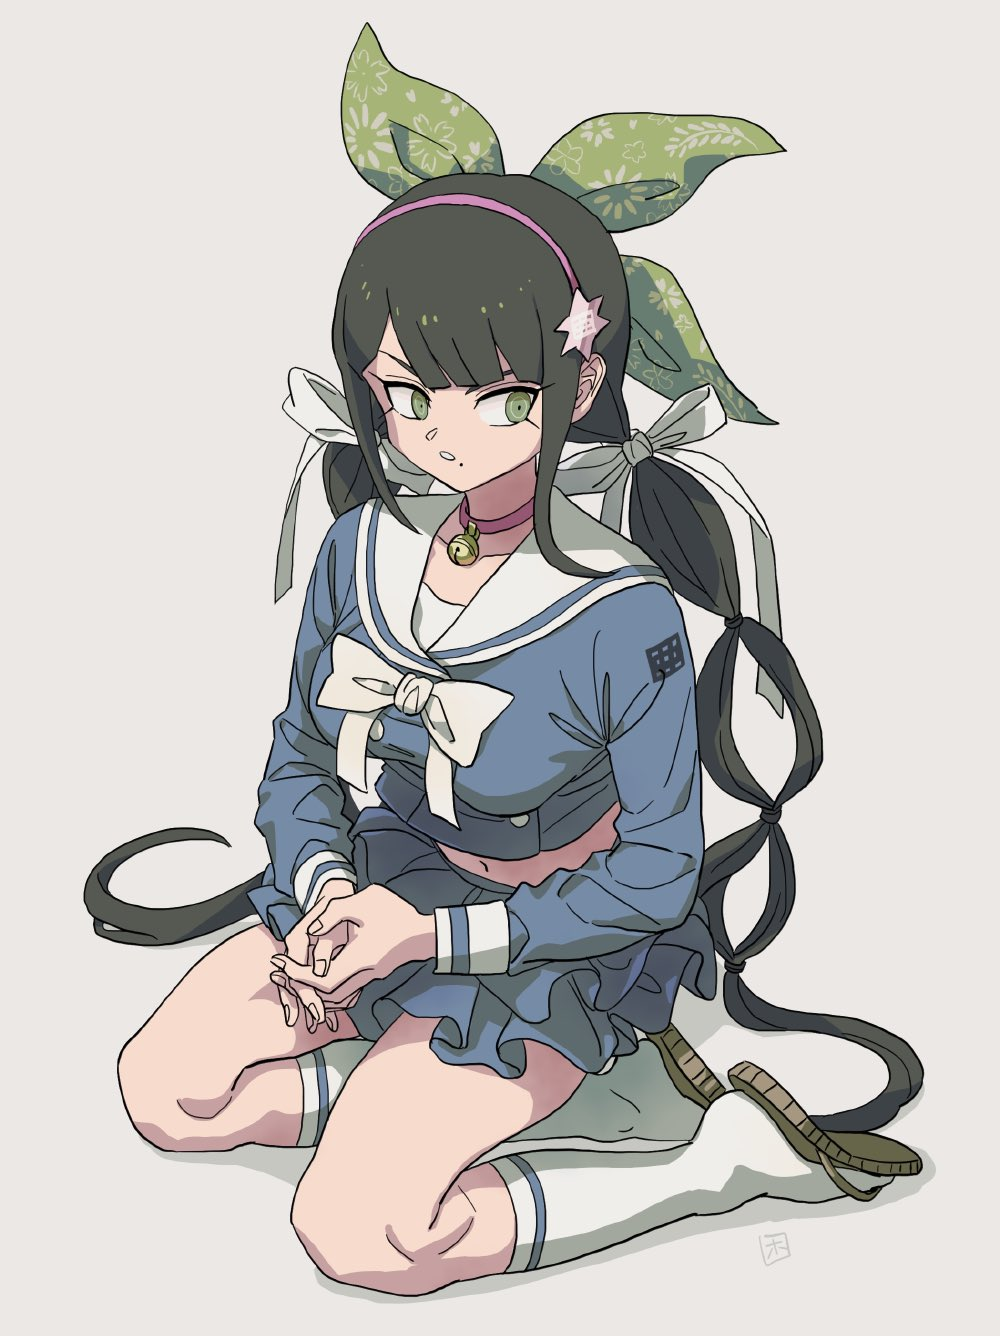 1girl bangs bell black_hair blue_shirt blunt_bangs breasts chabashira_tenko choker collarbone danganronpa_(series) danganronpa_v3:_killing_harmony green_eyes green_ribbon hair_ornament hair_ribbon hairband highres hosodayo kneehighs large_breasts layered_skirt long_hair long_sleeves low_twintails midriff mole mole_under_mouth navel neck_bell parted_lips pink_choker pink_hairband pleated_skirt ribbon school_uniform serafuku shirt sitting skirt solo twintails white_legwear